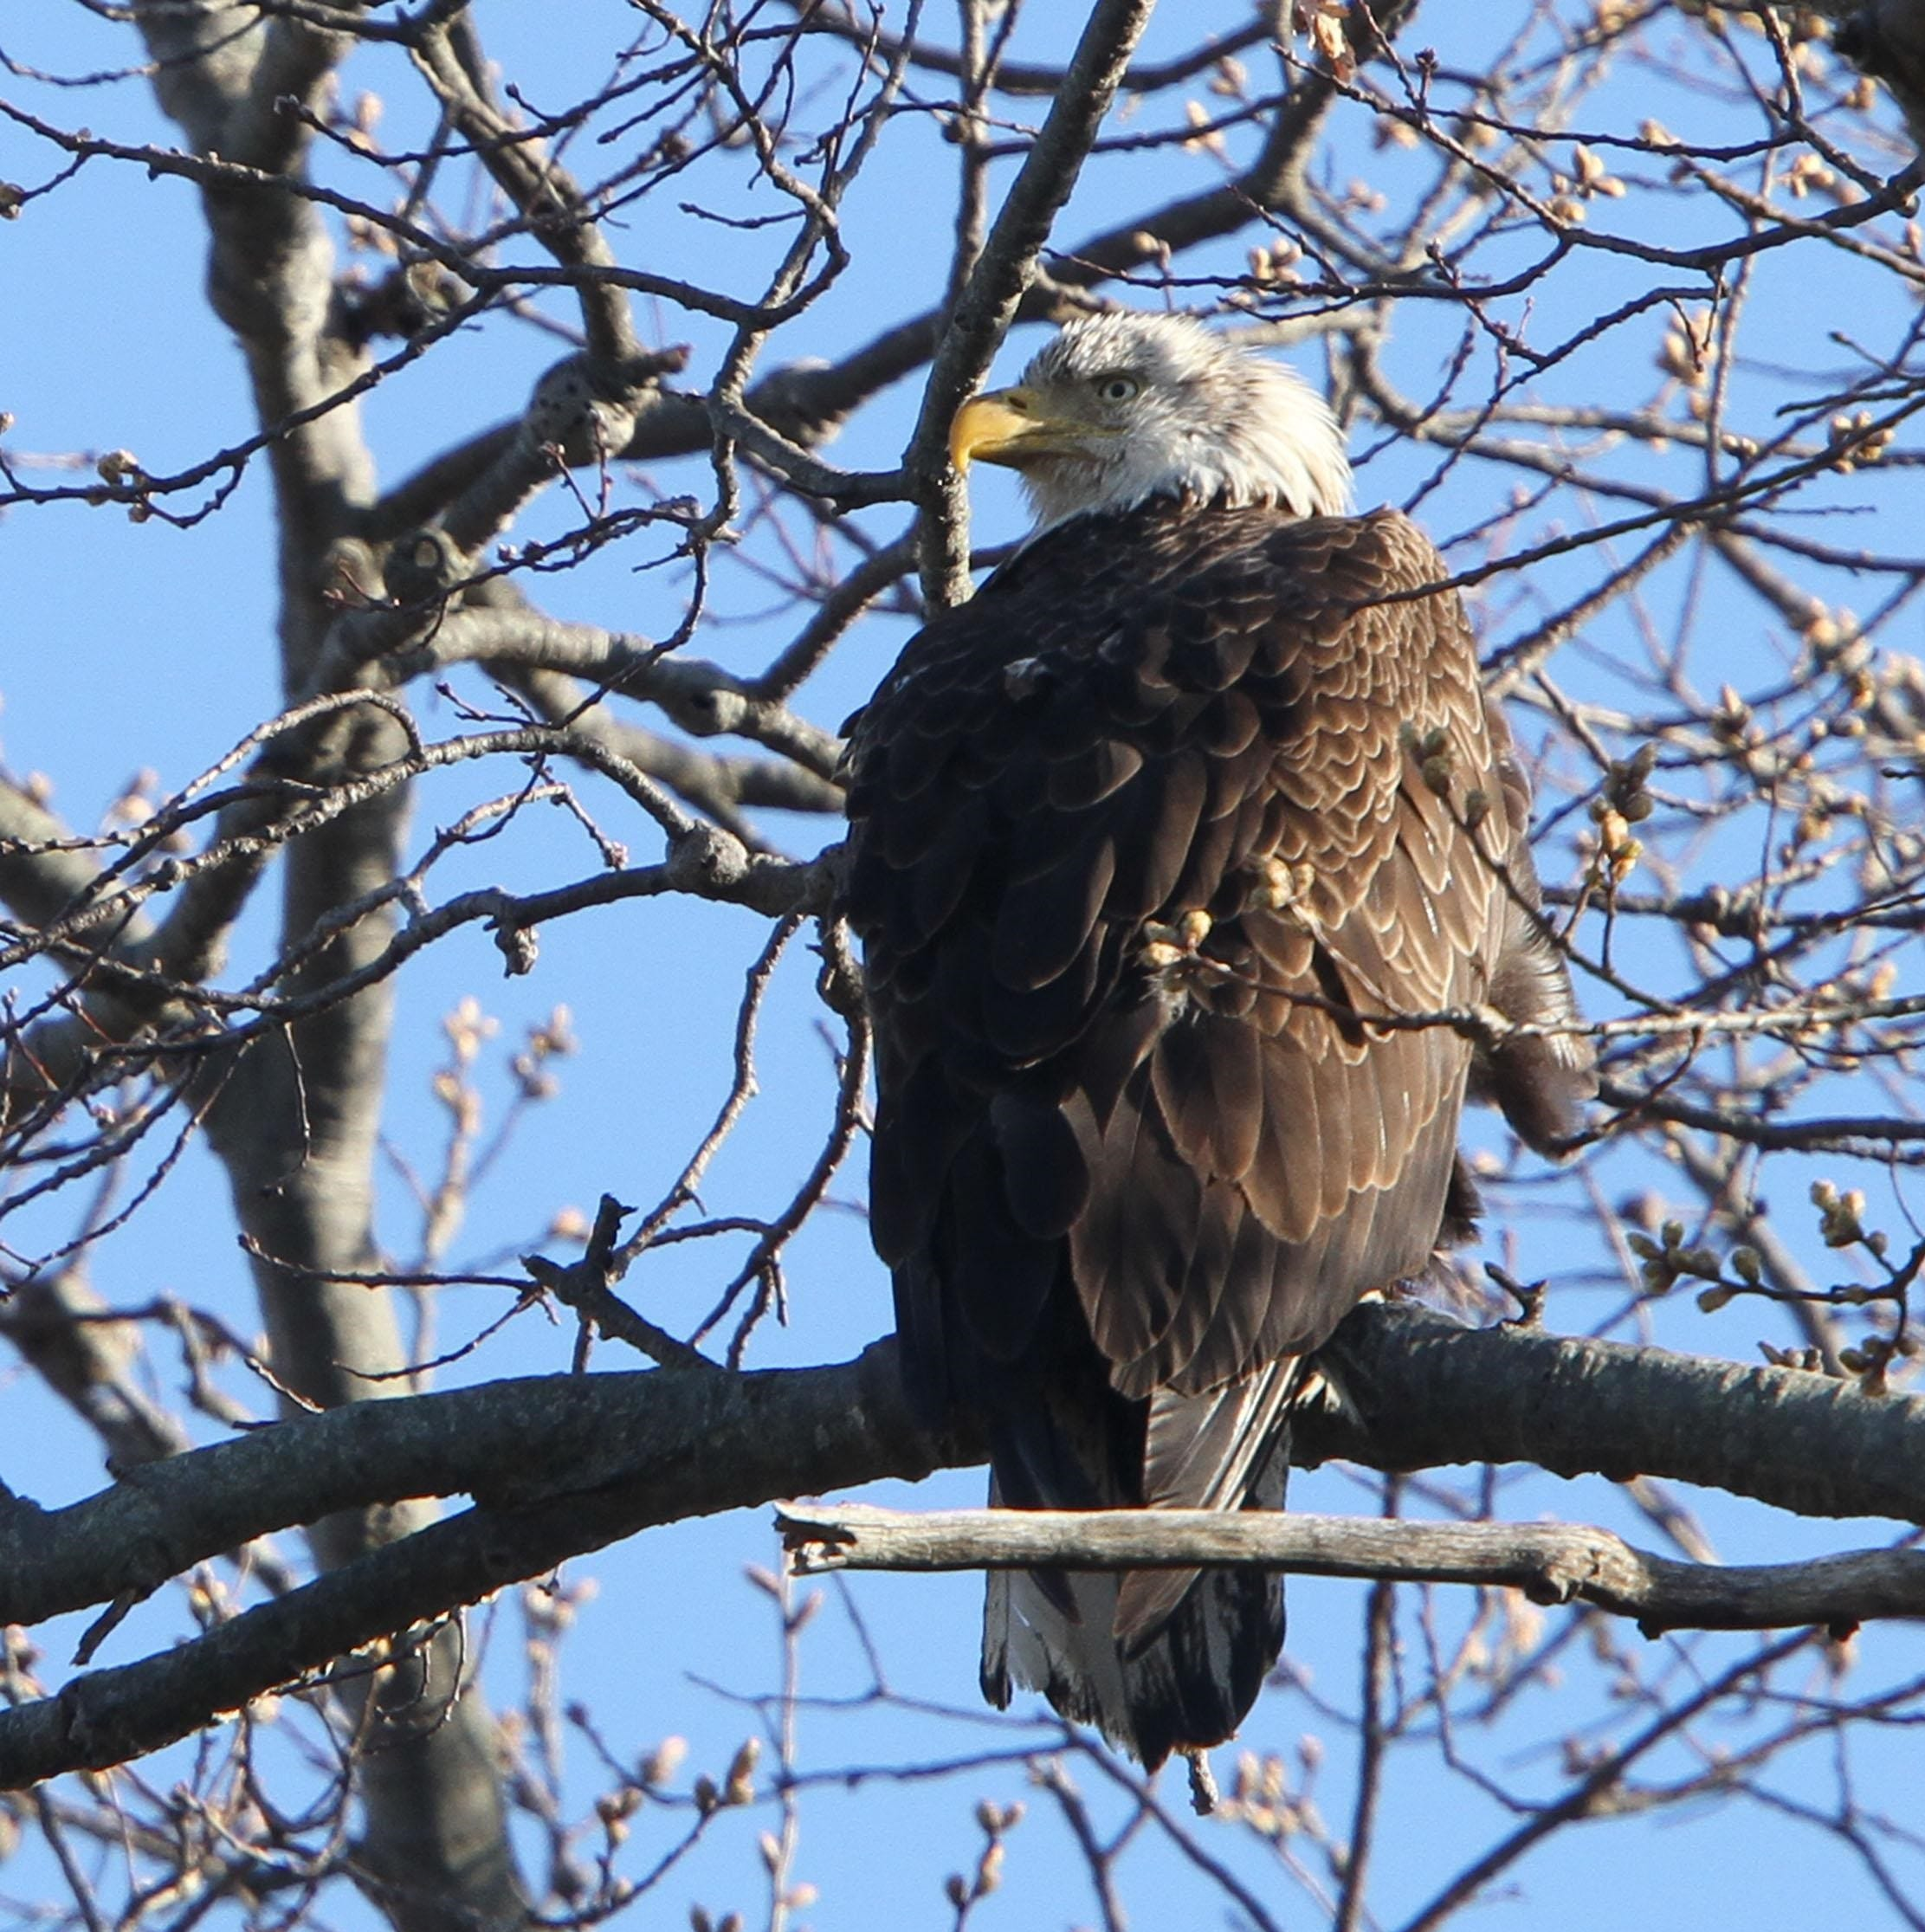 Neighbors briefs: Eagles, strawberries, Alexander, Ospreys, Morey's Pier, grief support